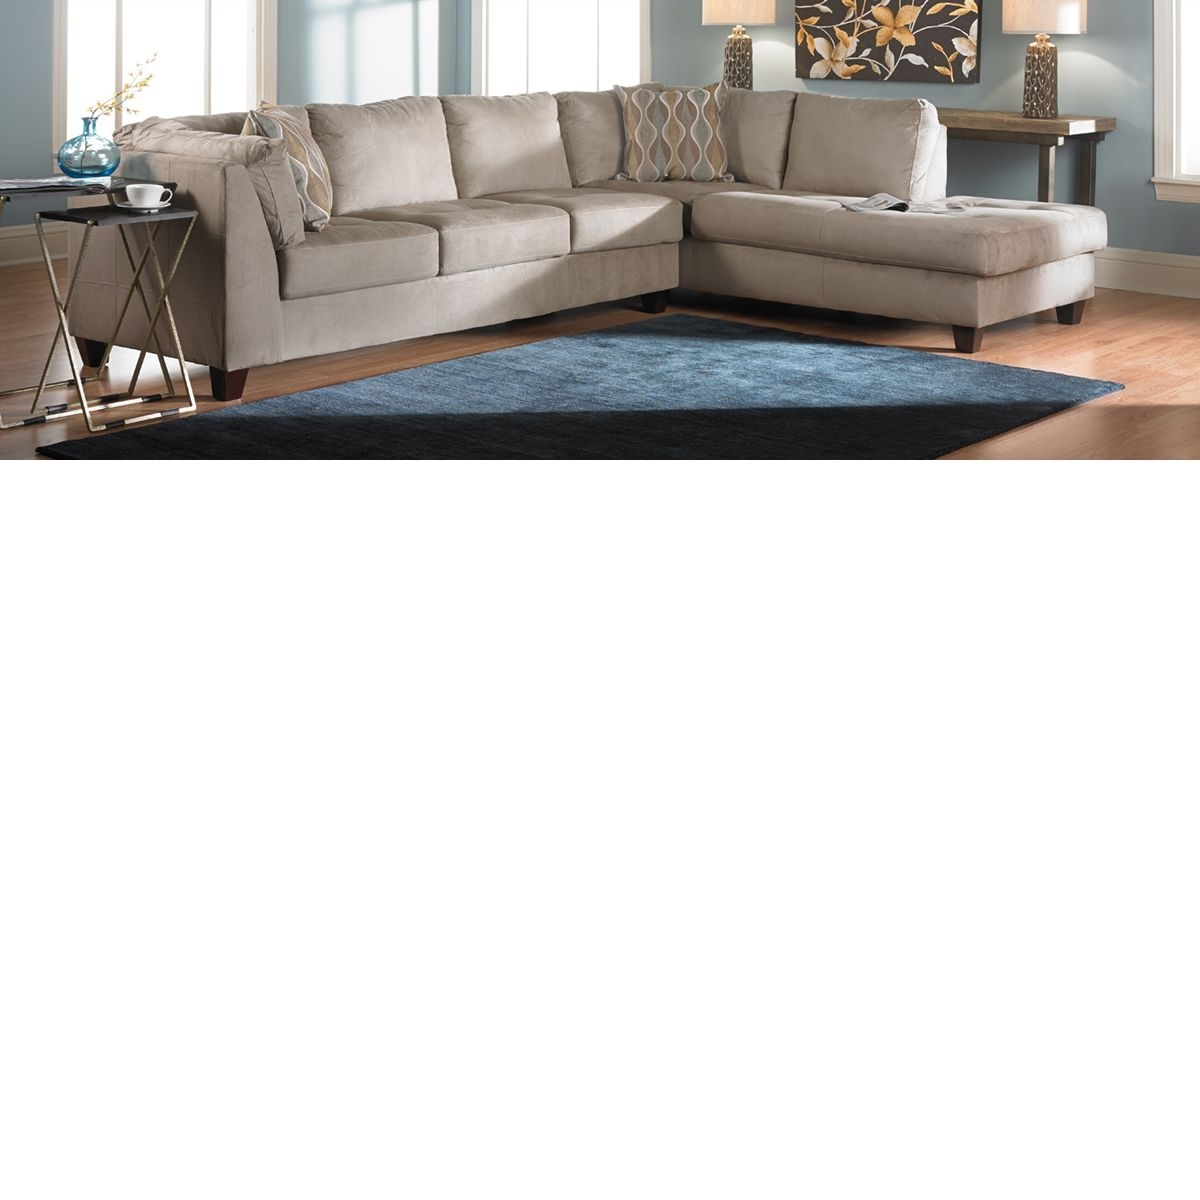 Virginia Beach Sectional Sofas Pertaining To Most Recent Stunning The Dump Furniture Sectional Sofa For Home Pic Haynes (View 11 of 15)